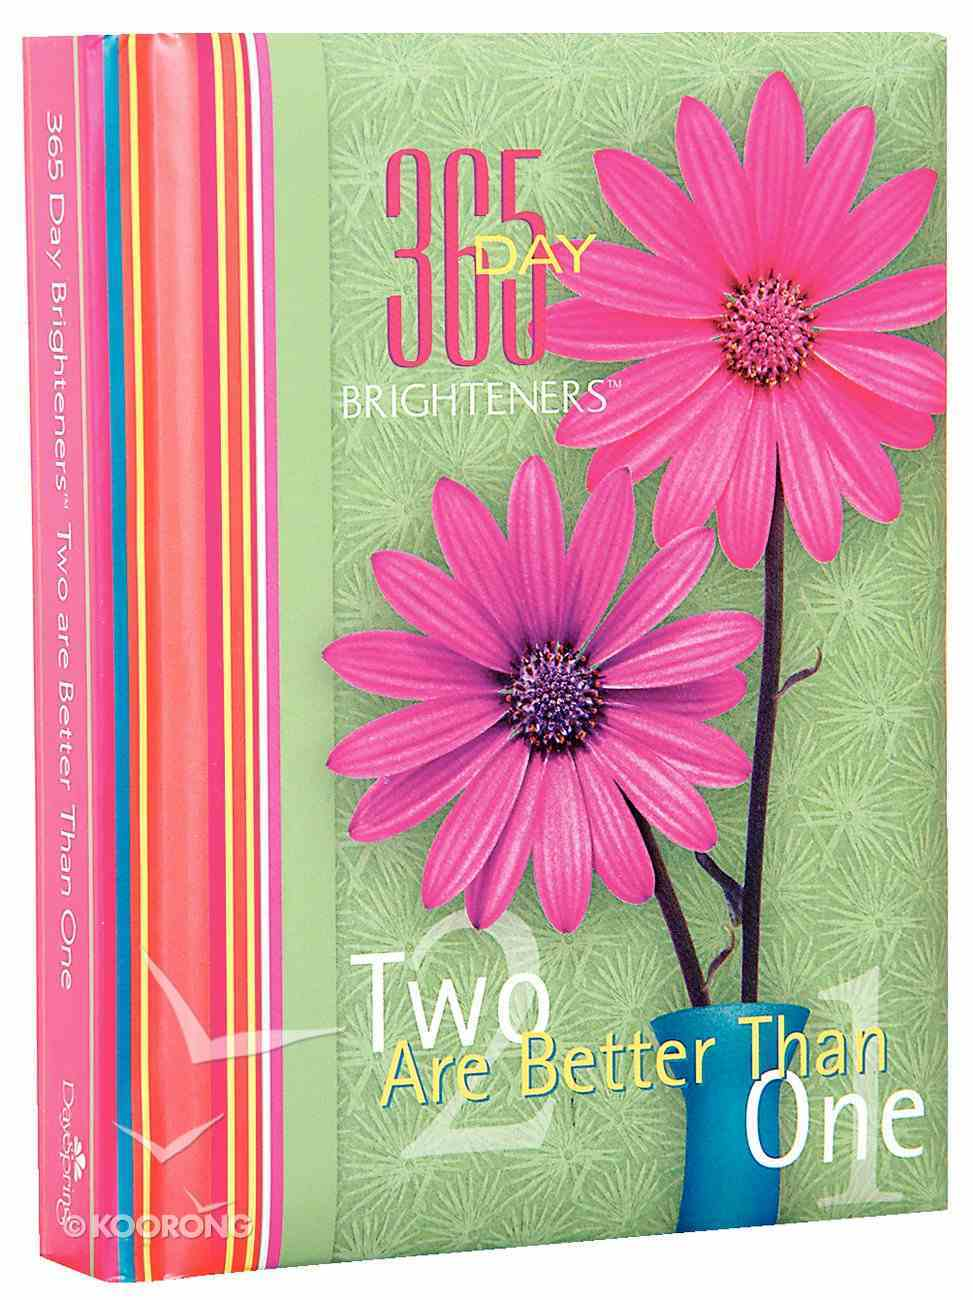 Two Are Better Than One (365 Day Brighteners Series) Hardback